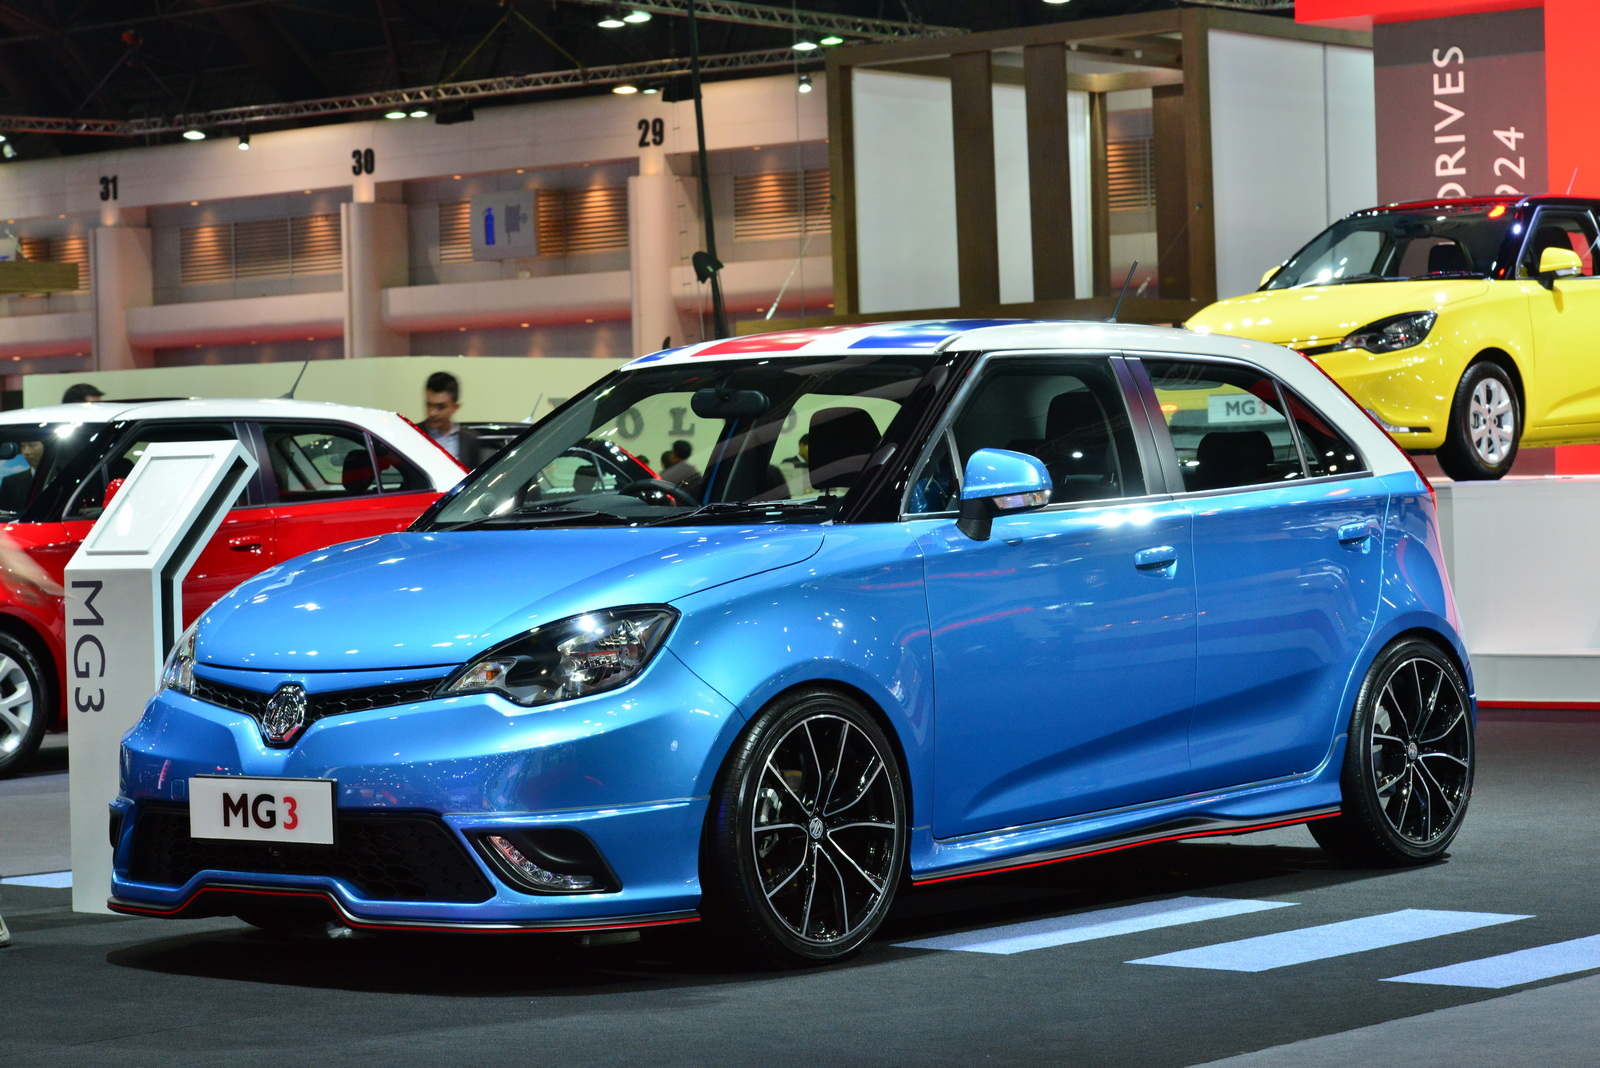 Mg Mg3 – pictures, information and specs - Auto-Database.com